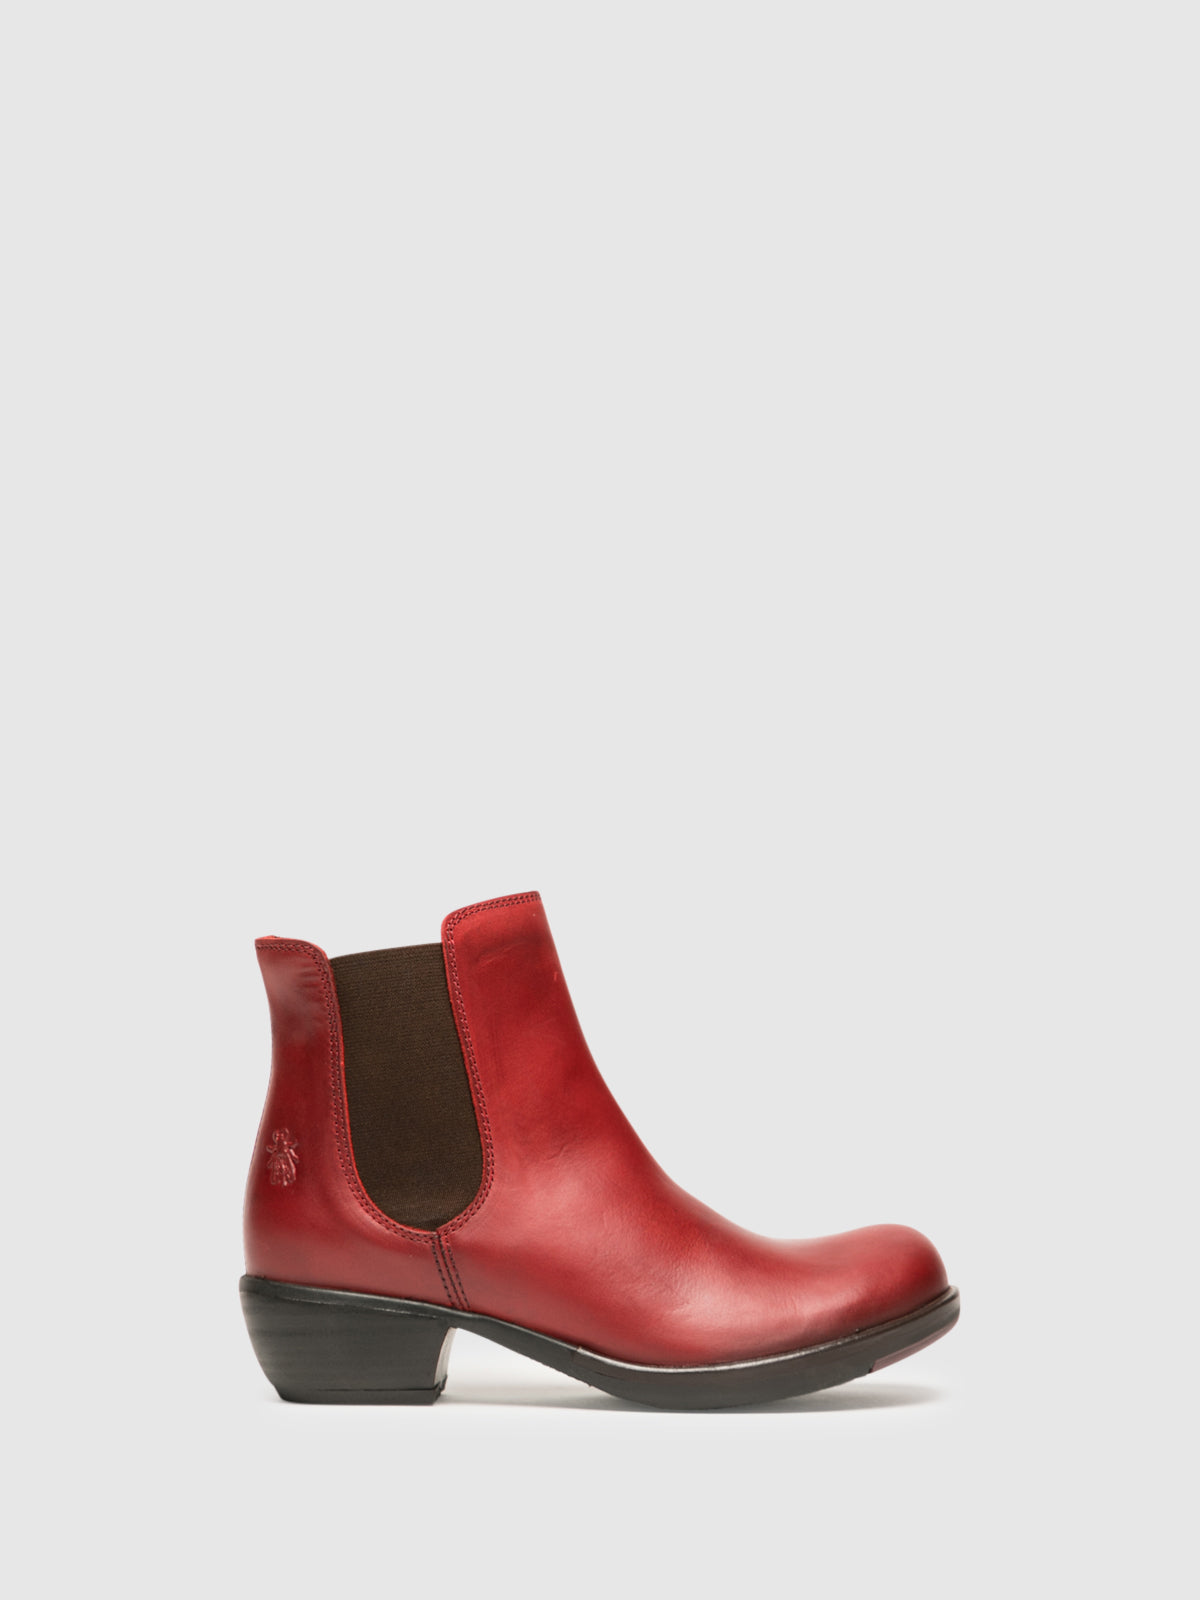 Fly London Stiefeletten im Chelsea-Stil in Rot